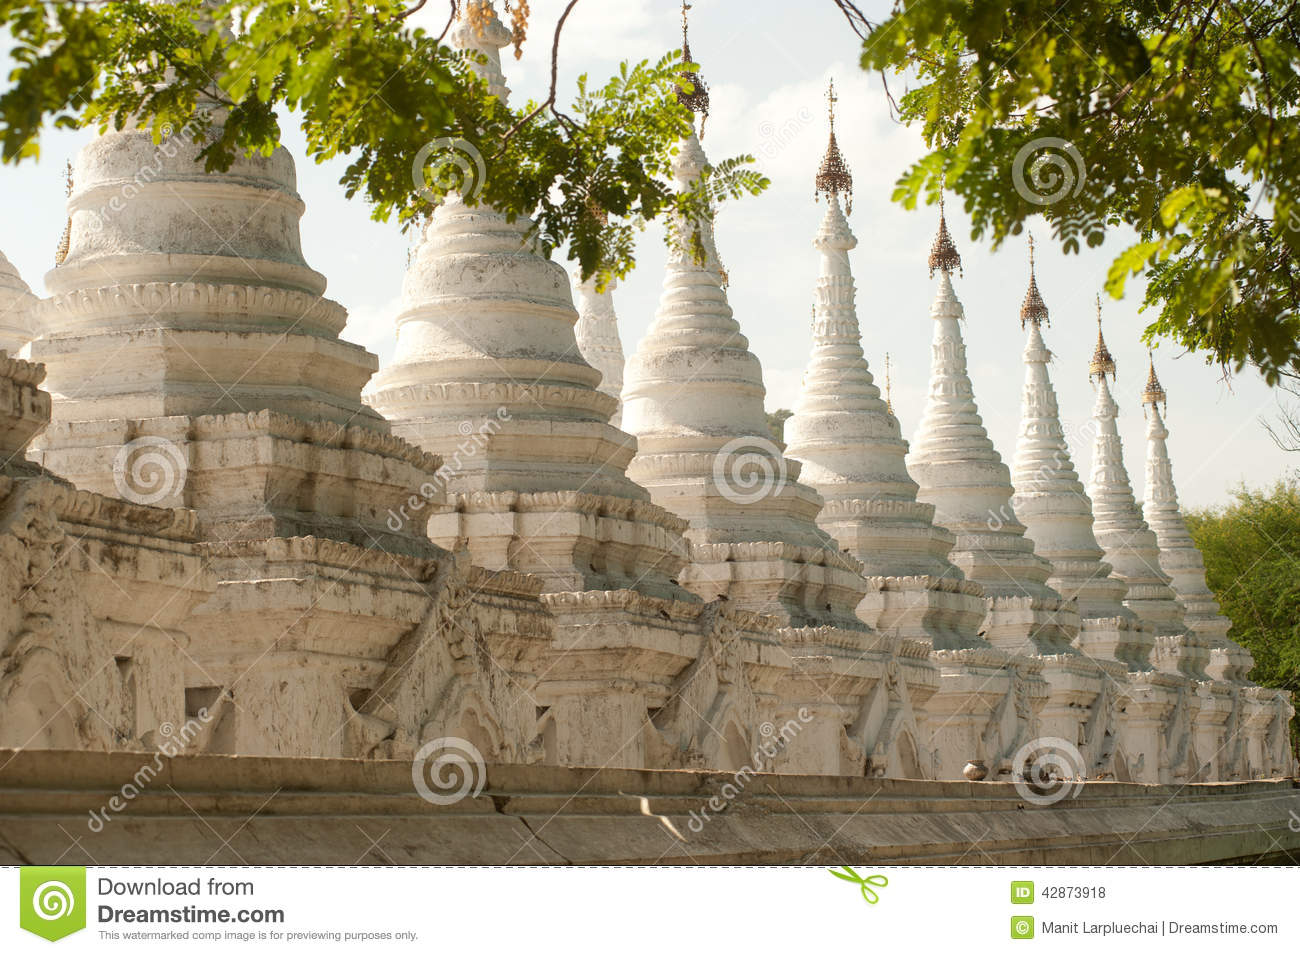 Interesting Myanmar Facts That Will Blow Your Mind!